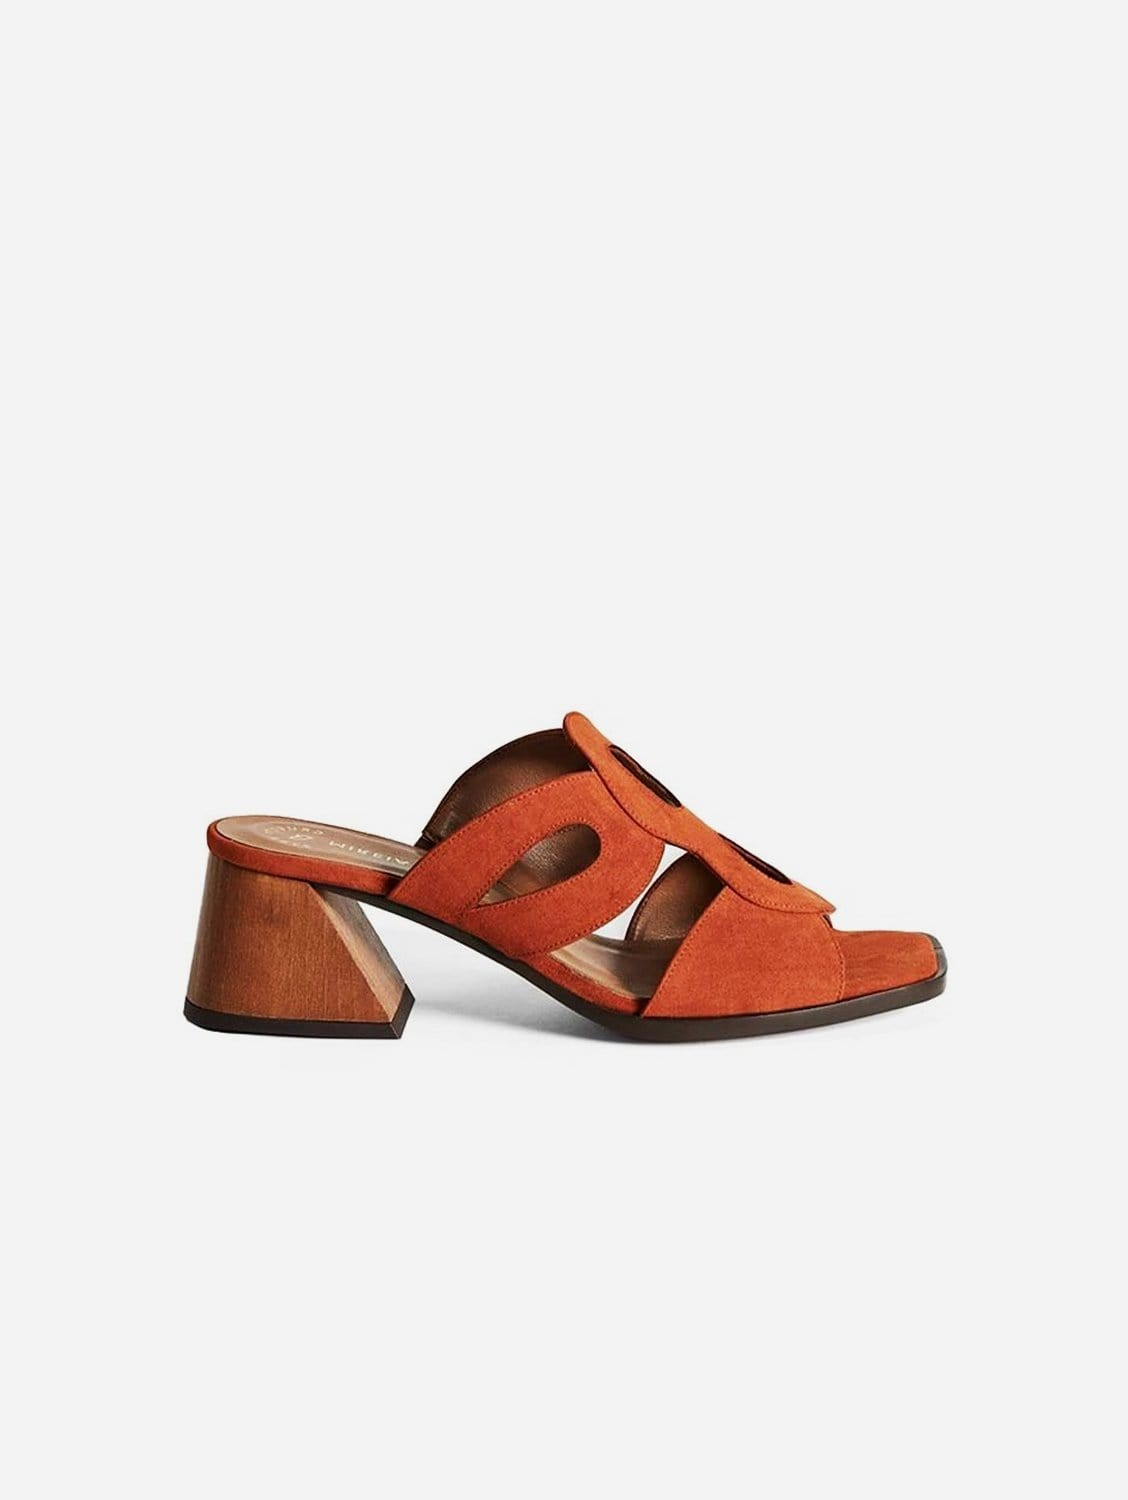 Haba Recycled Polyester Vegan Suede Mule | Brick Red